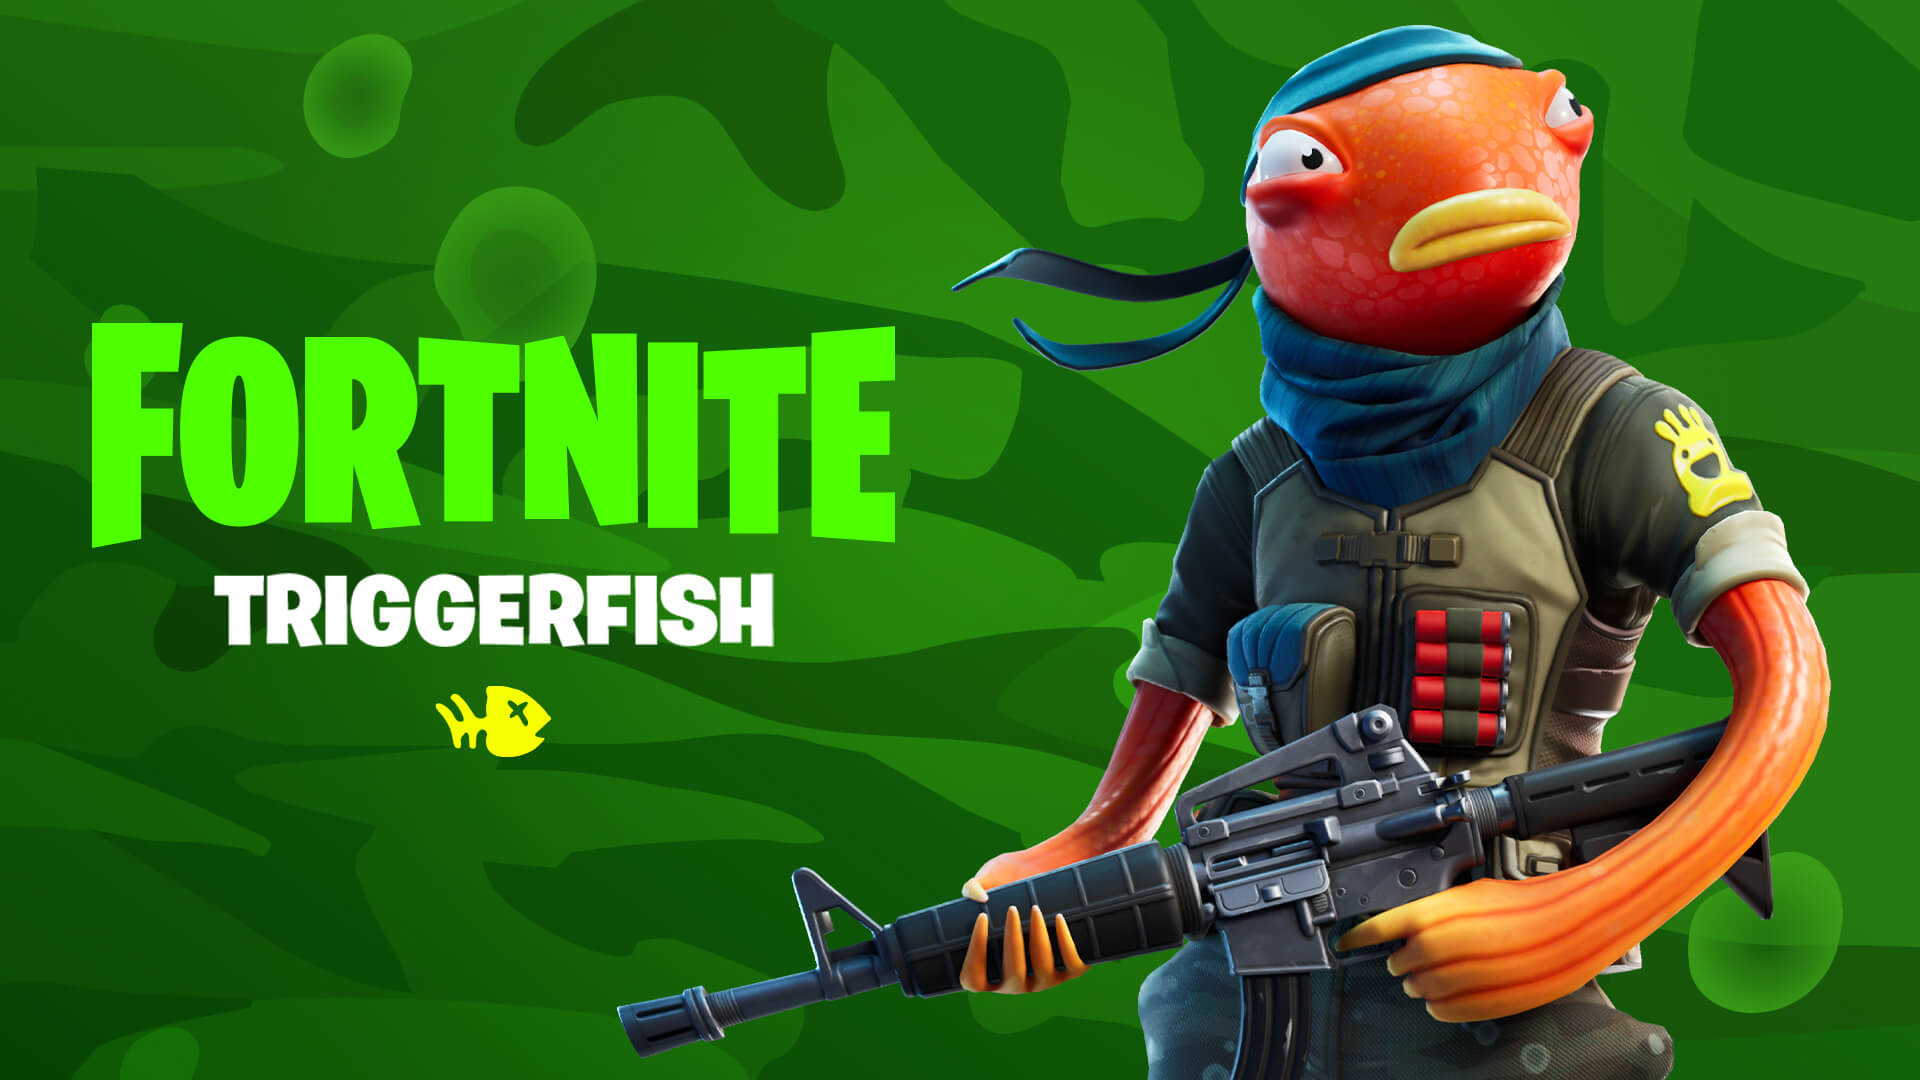 Fortnite Triggerfish Outfit